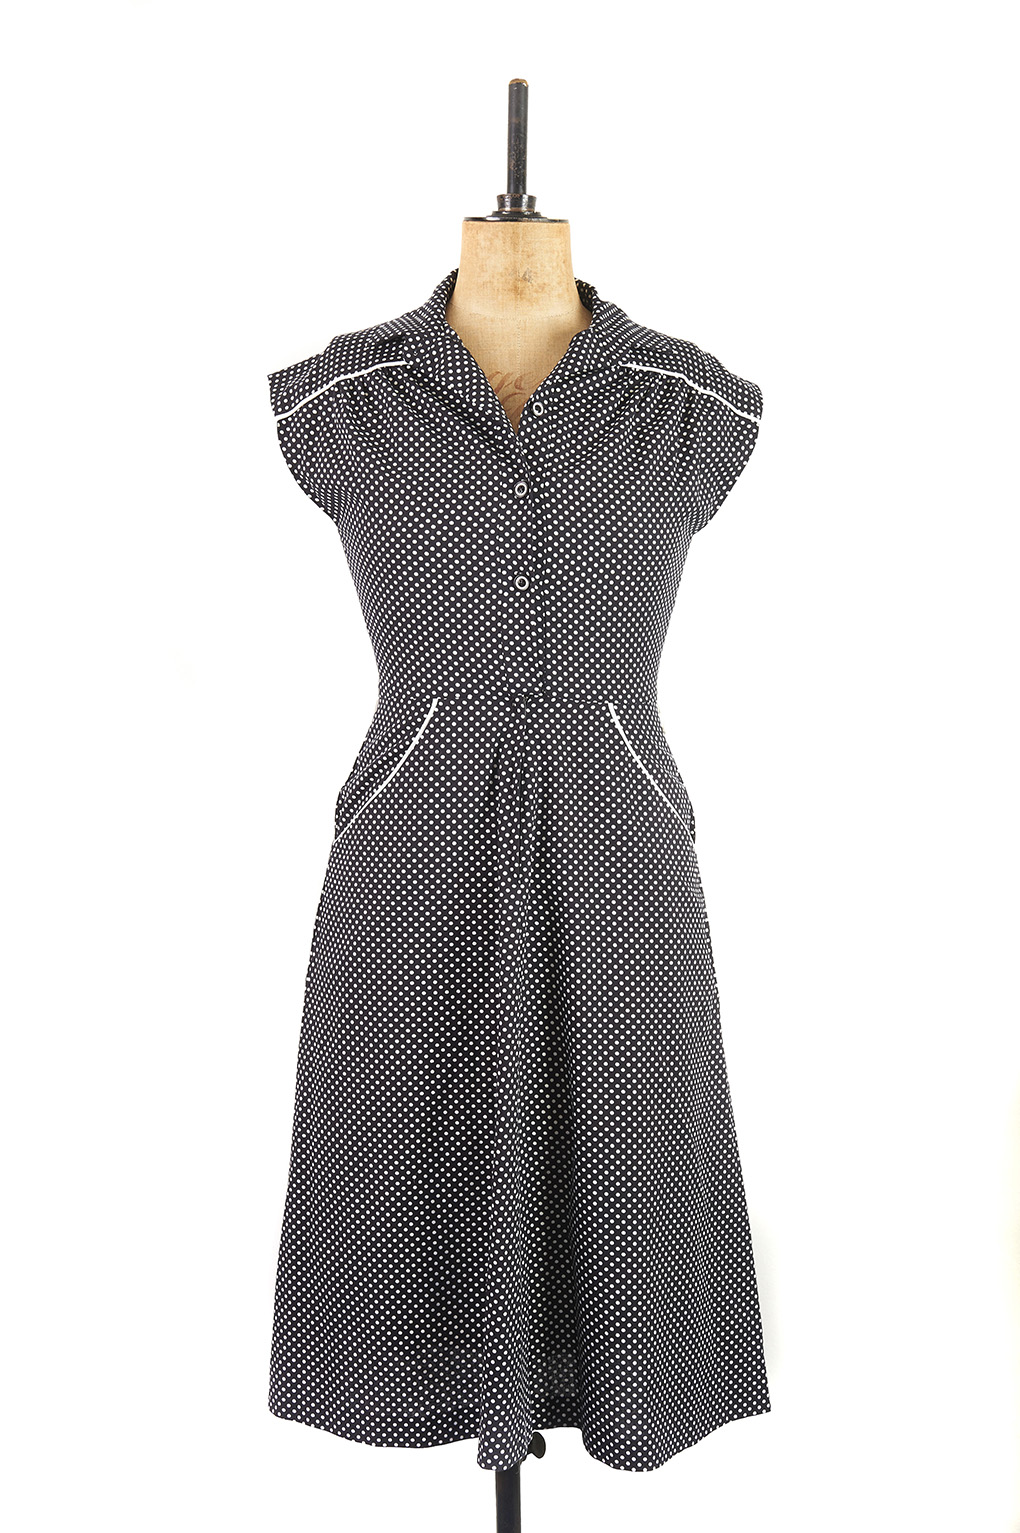 Black and white polka dot cotton vintage dress with fitted waist by Horrockses Fashions c. 1960